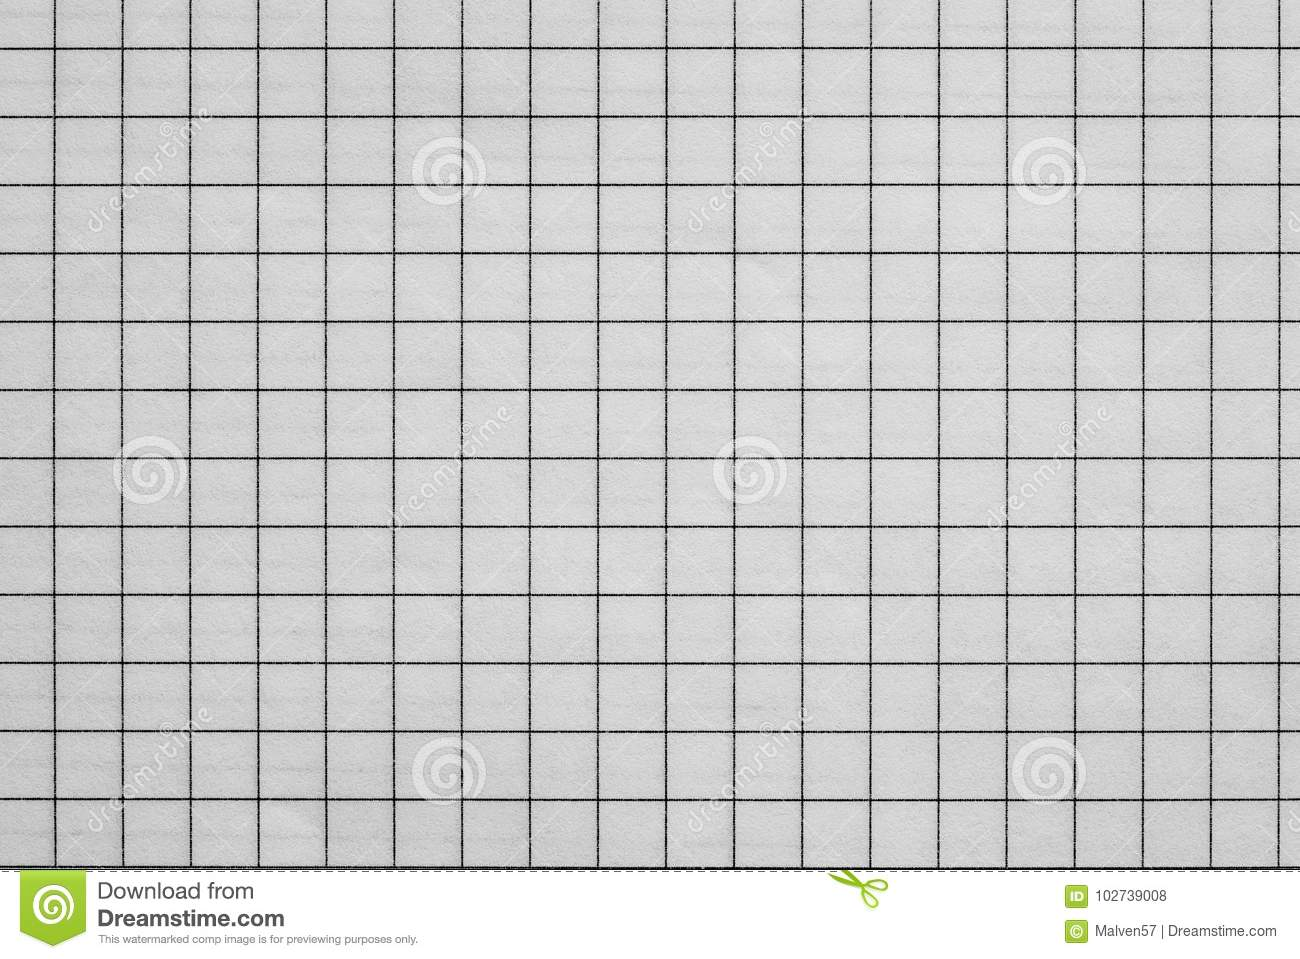 Sheet Of Checkered Paper Stock Photo Image Of Background 102739008